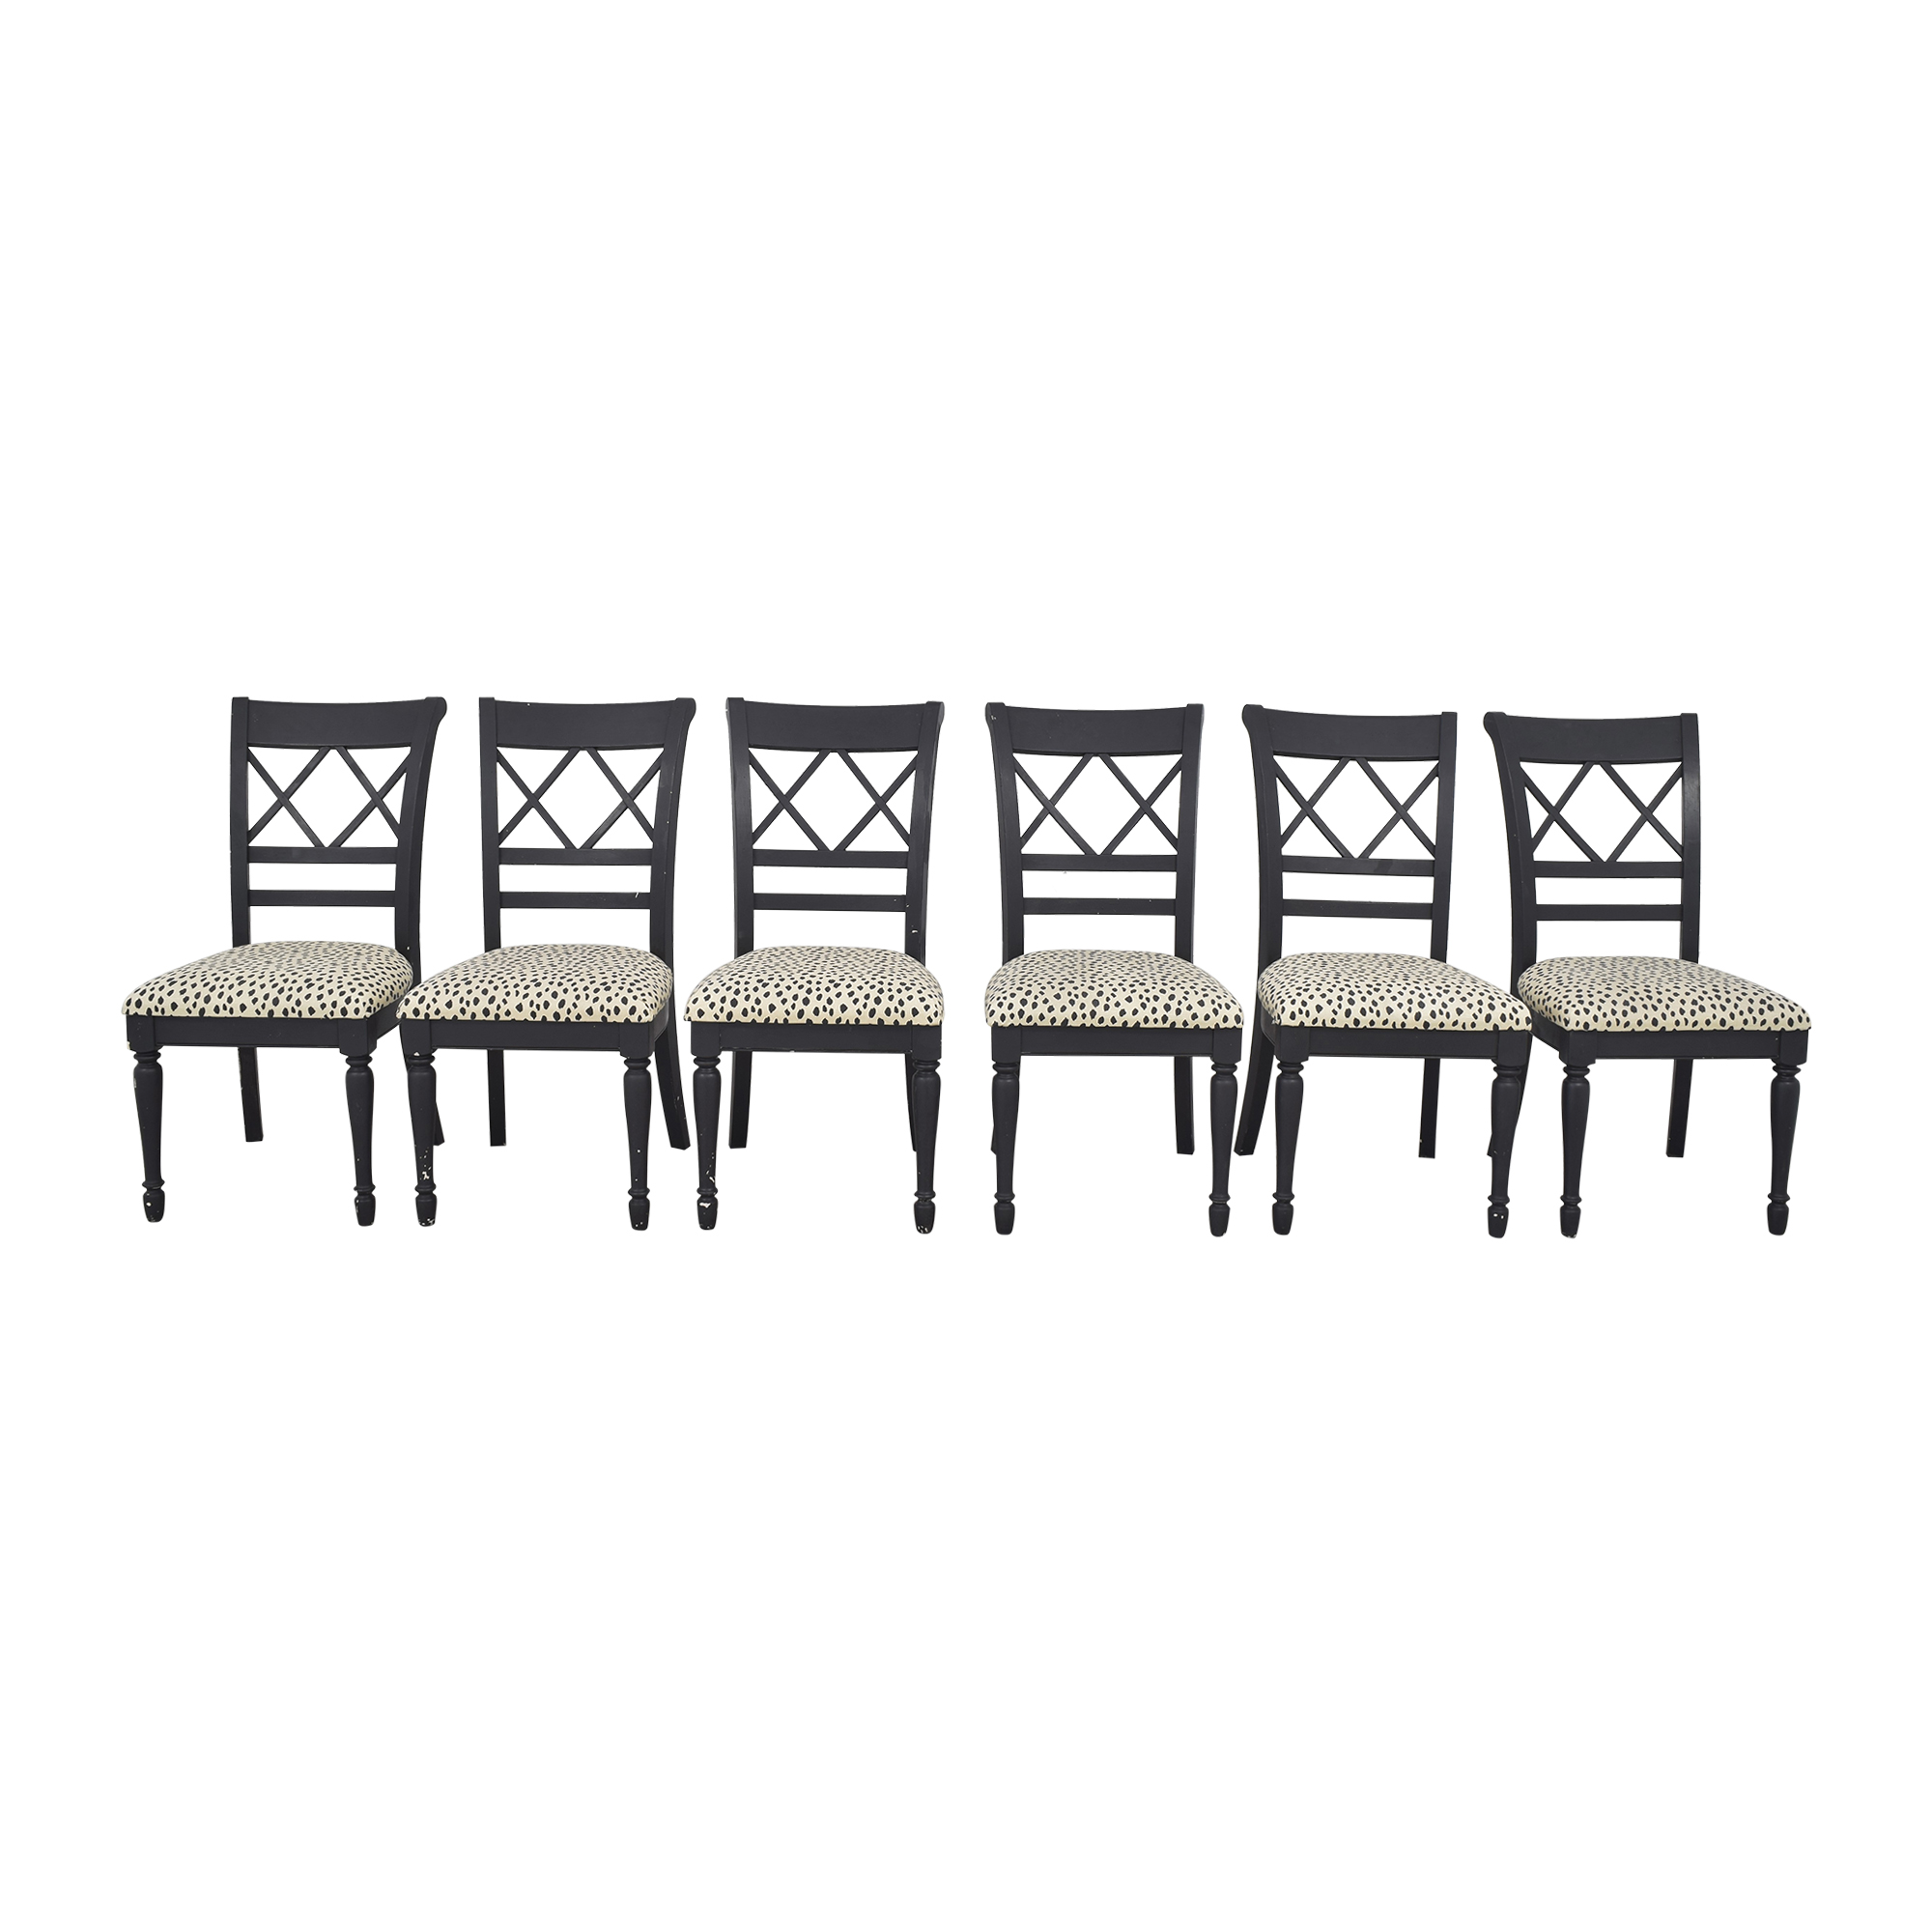 Cresent Fine Furniture Dining Chairs / Dining Chairs